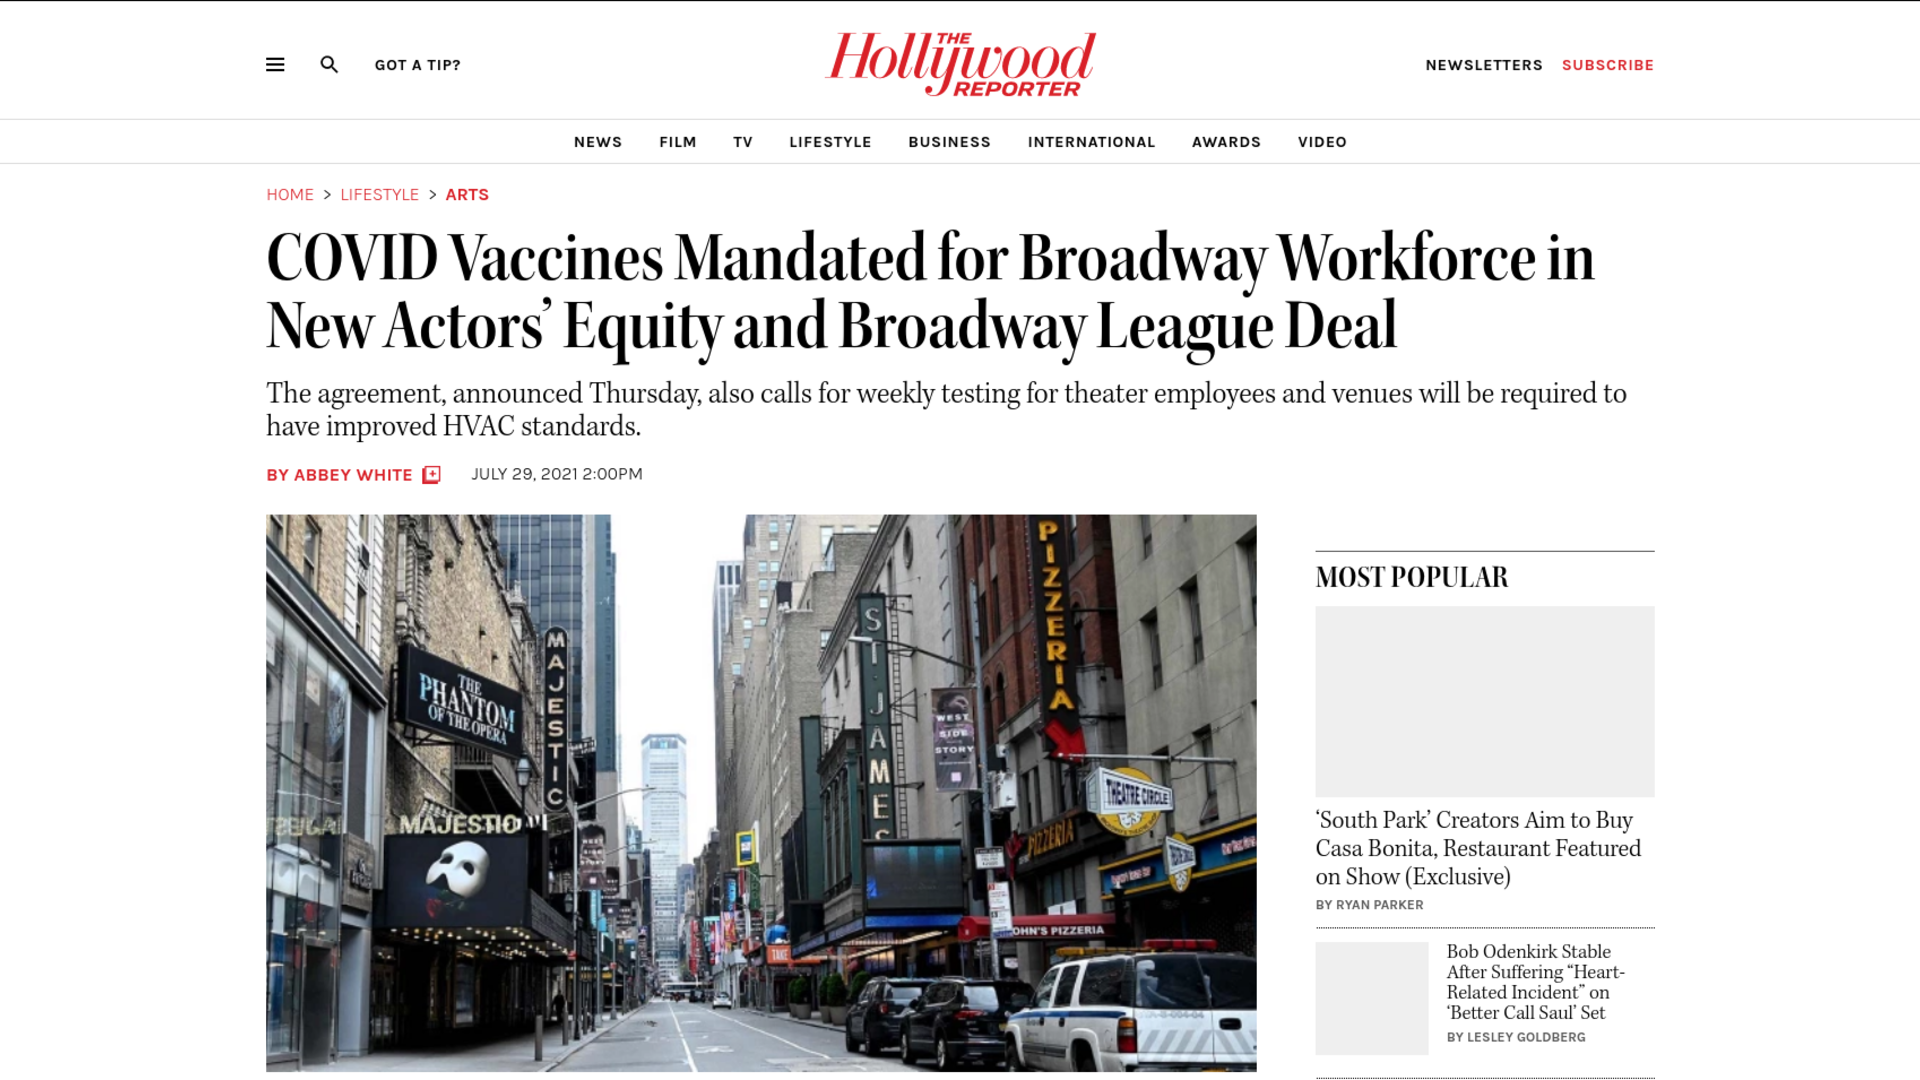 Fairness Rocks News COVID Vaccines Mandated for Broadway Workforce in New Actors' Equity and Broadway League Deal